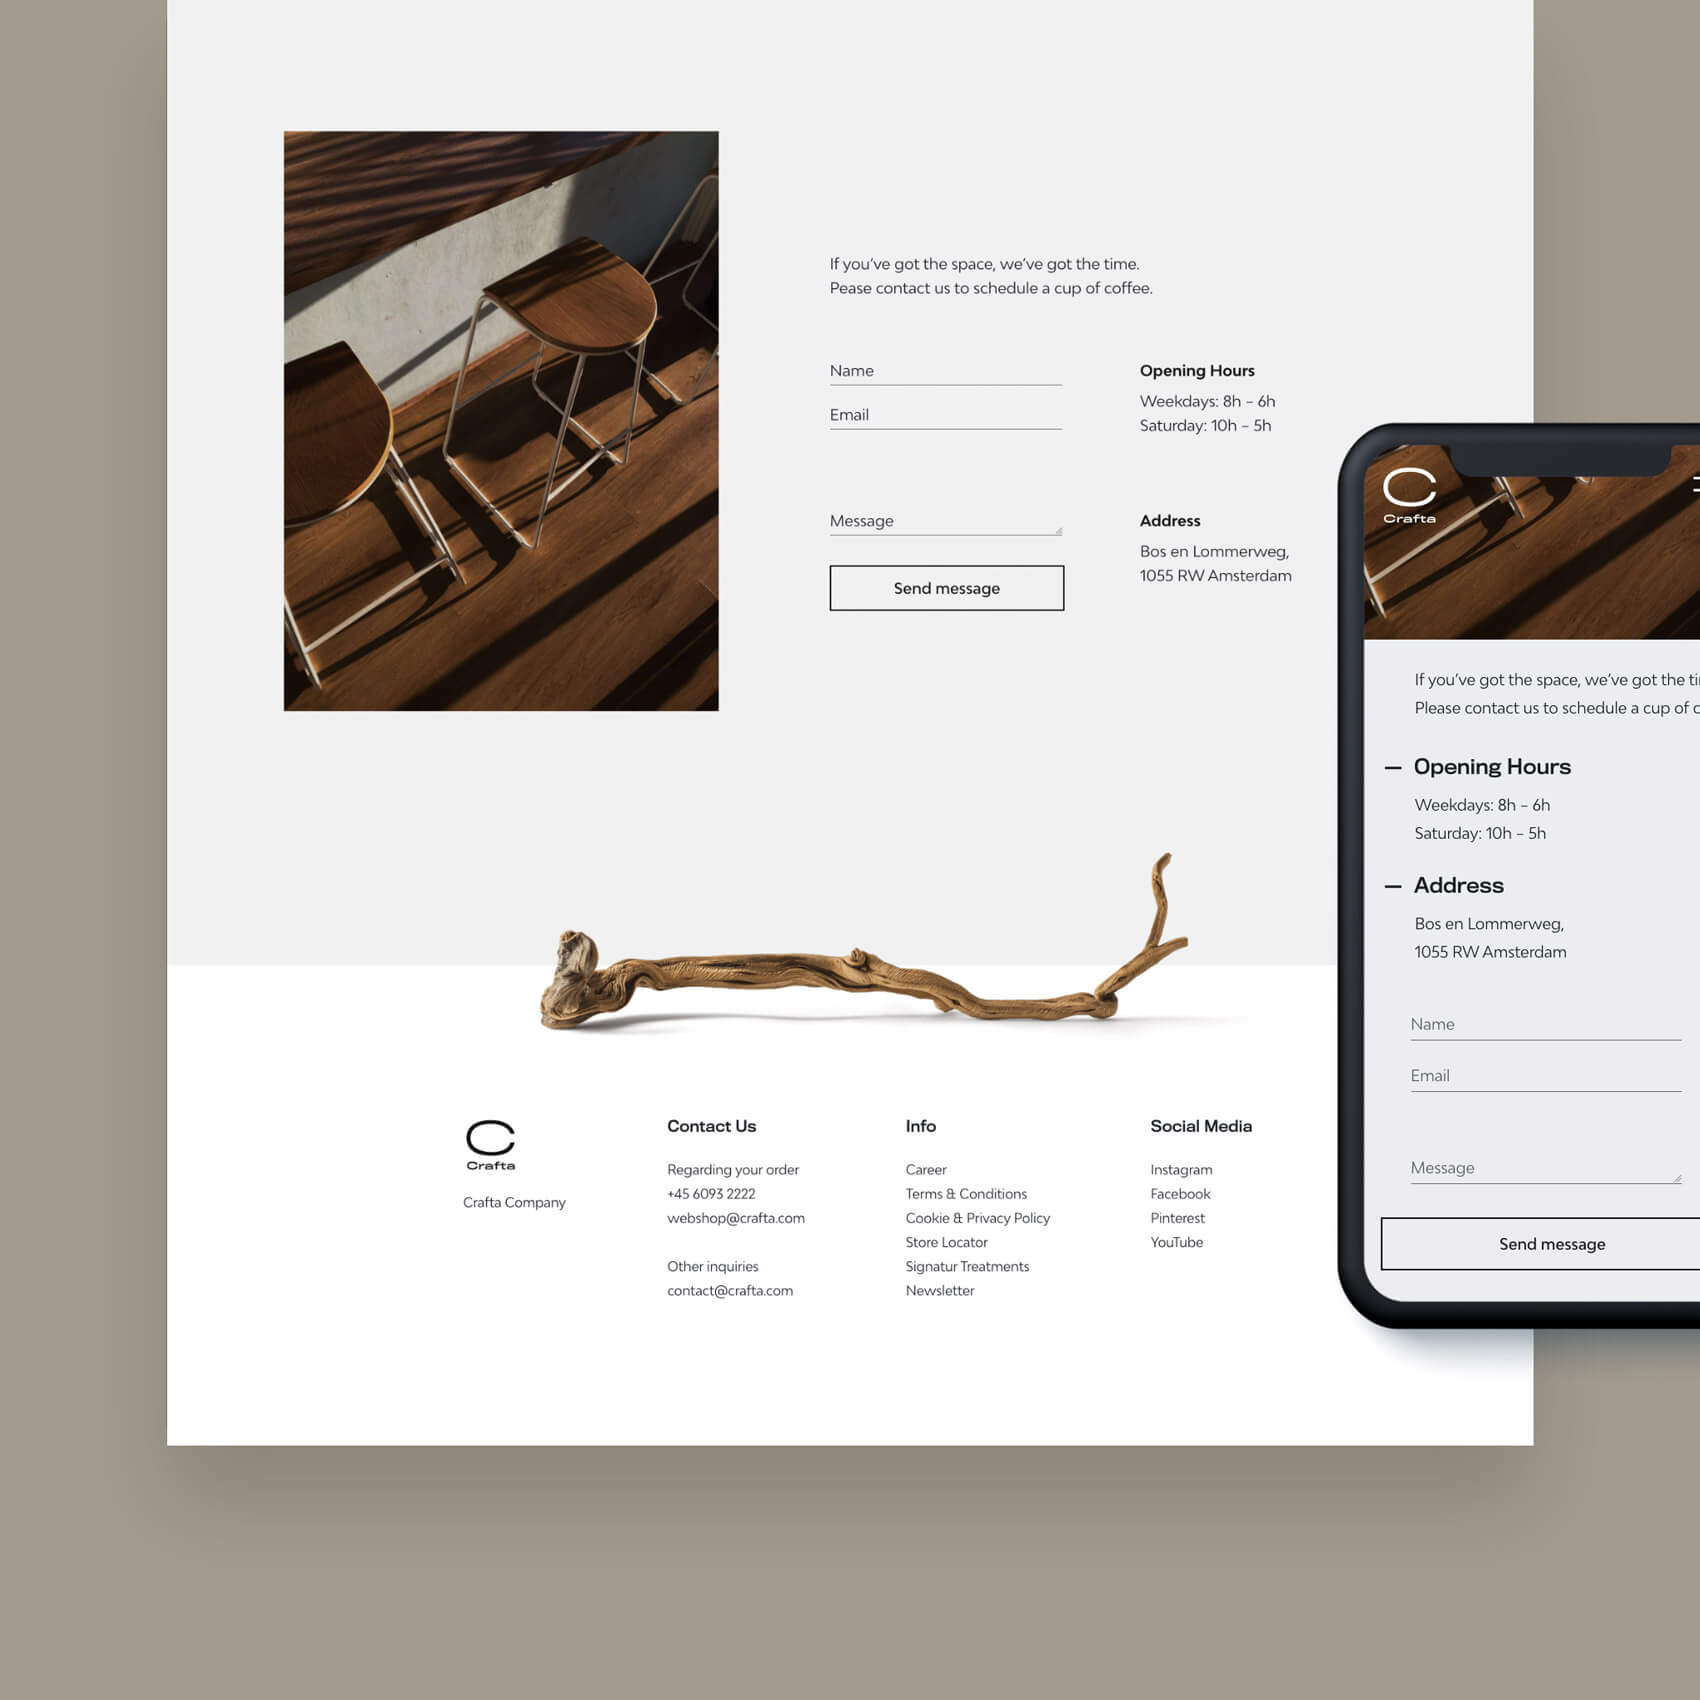 Website Design with a smartphone in front